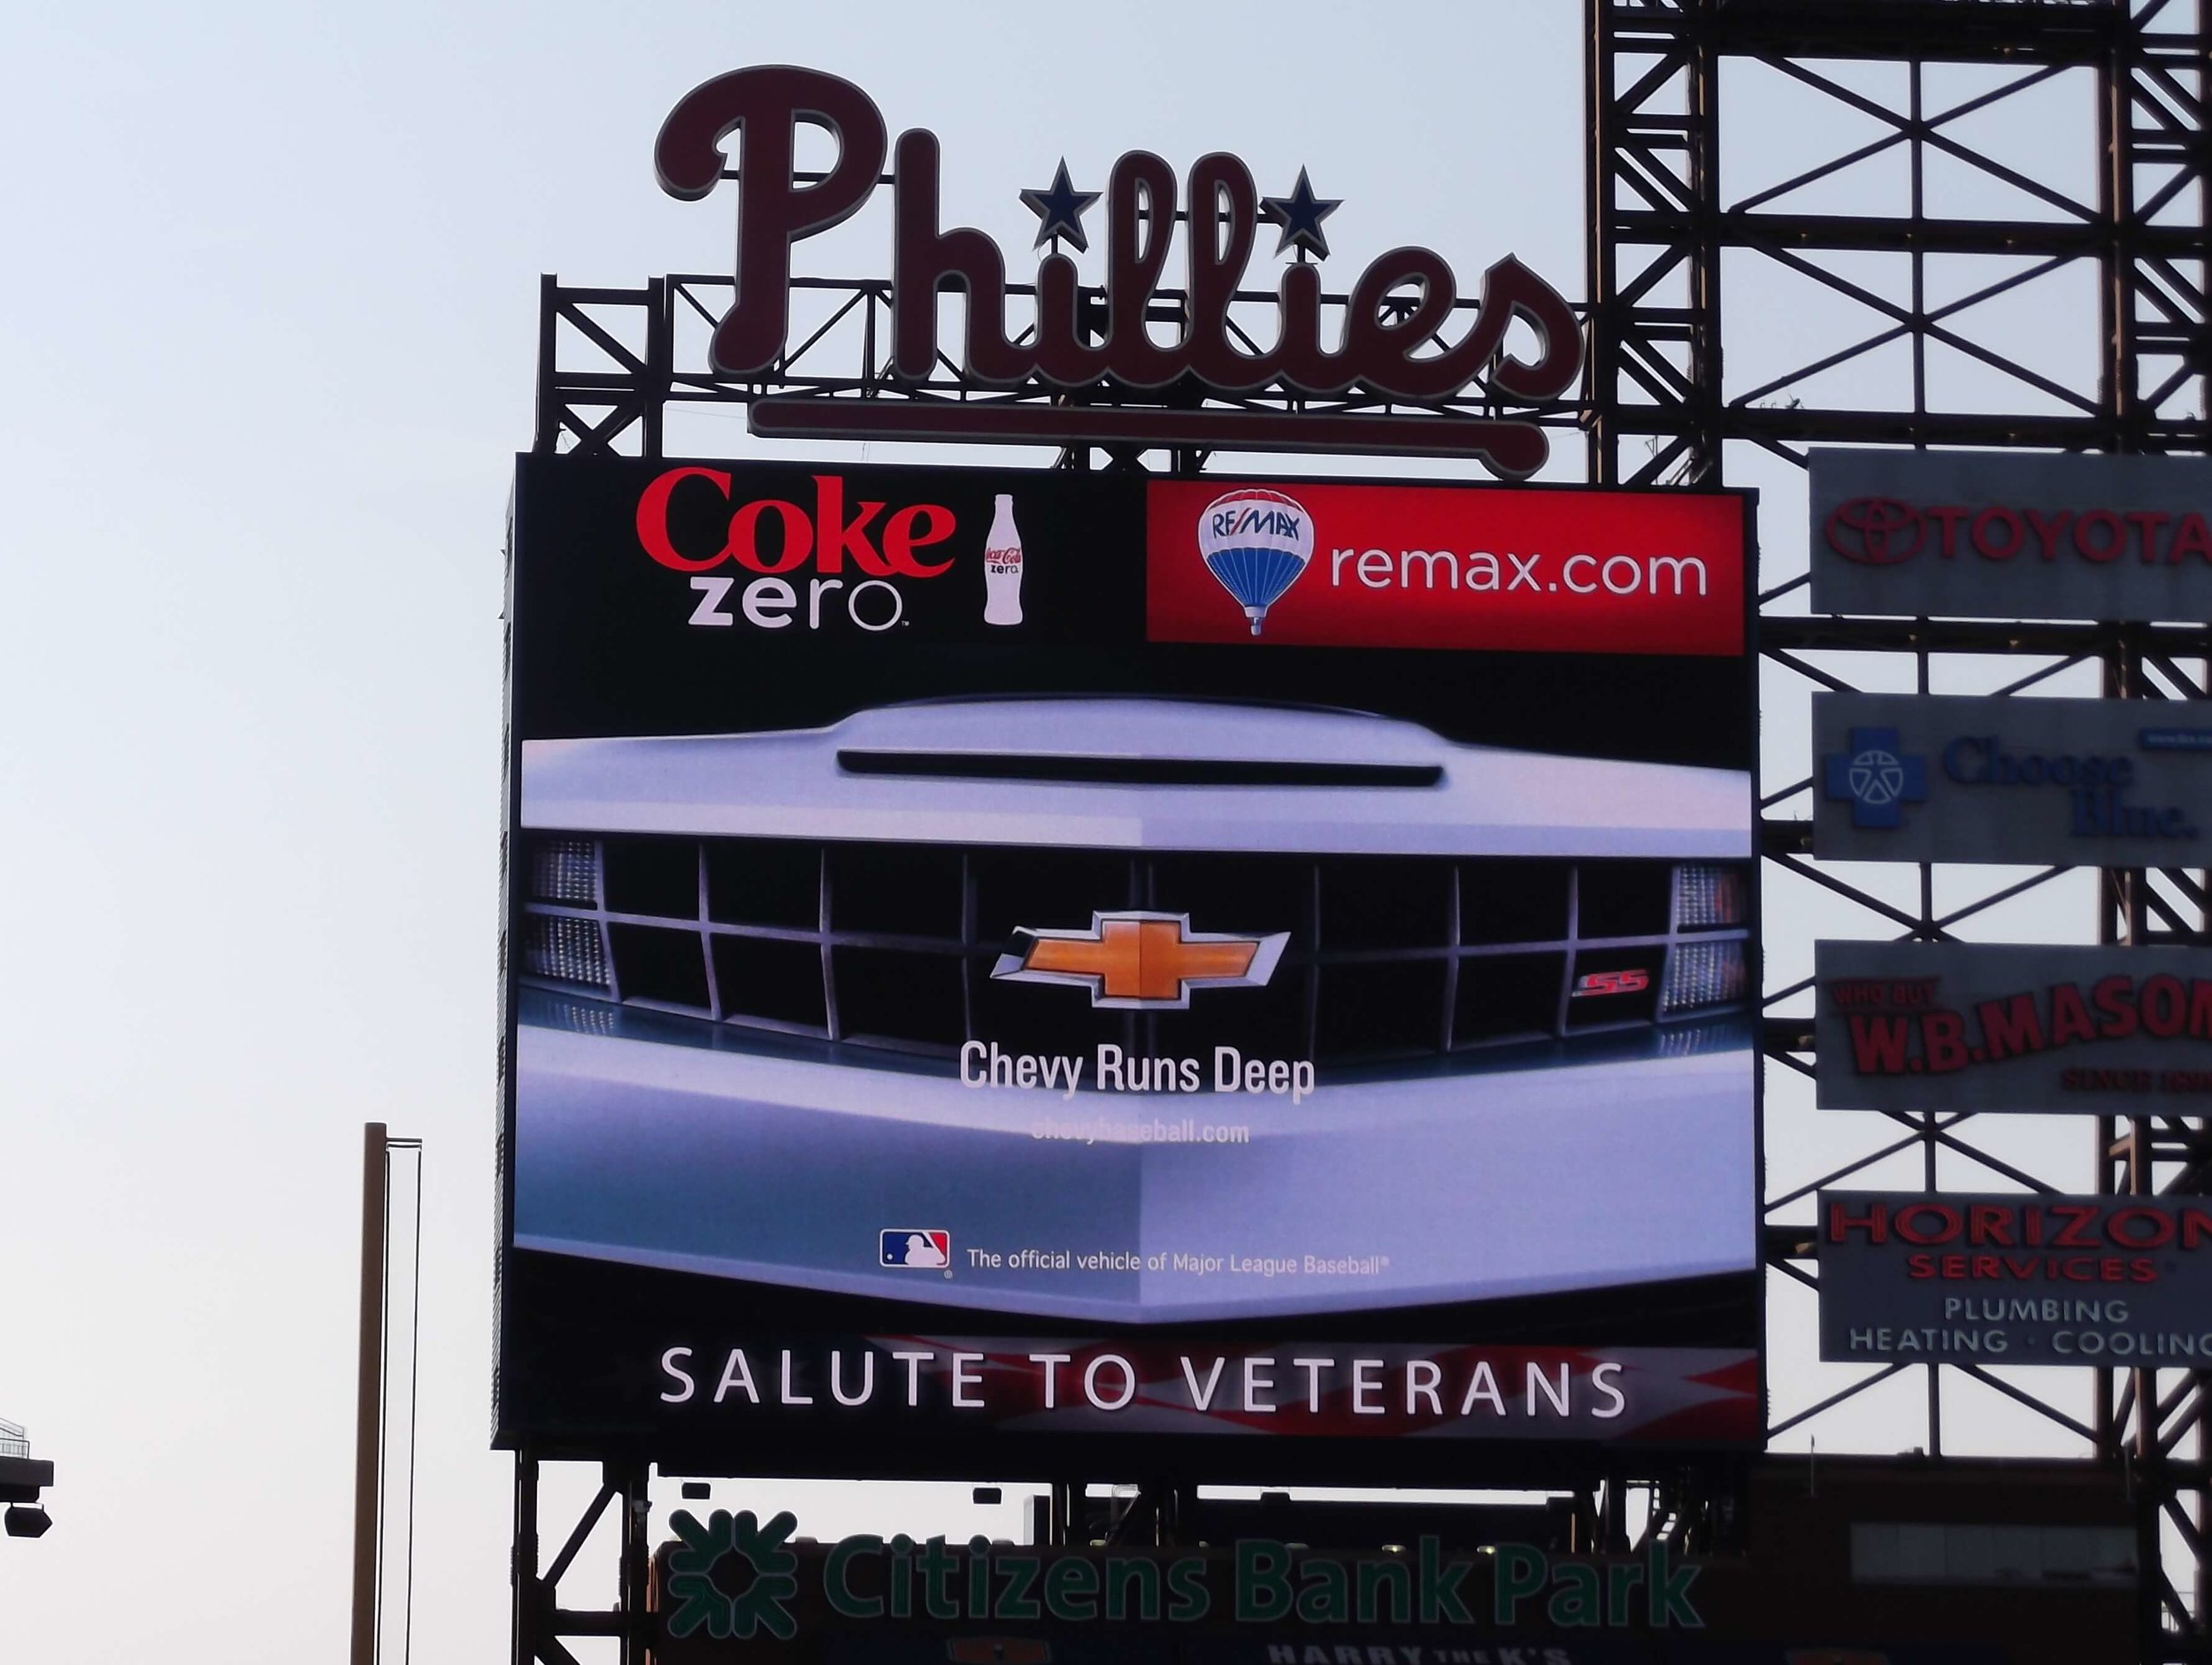 Chevy and the Phillies deliver fan engagement